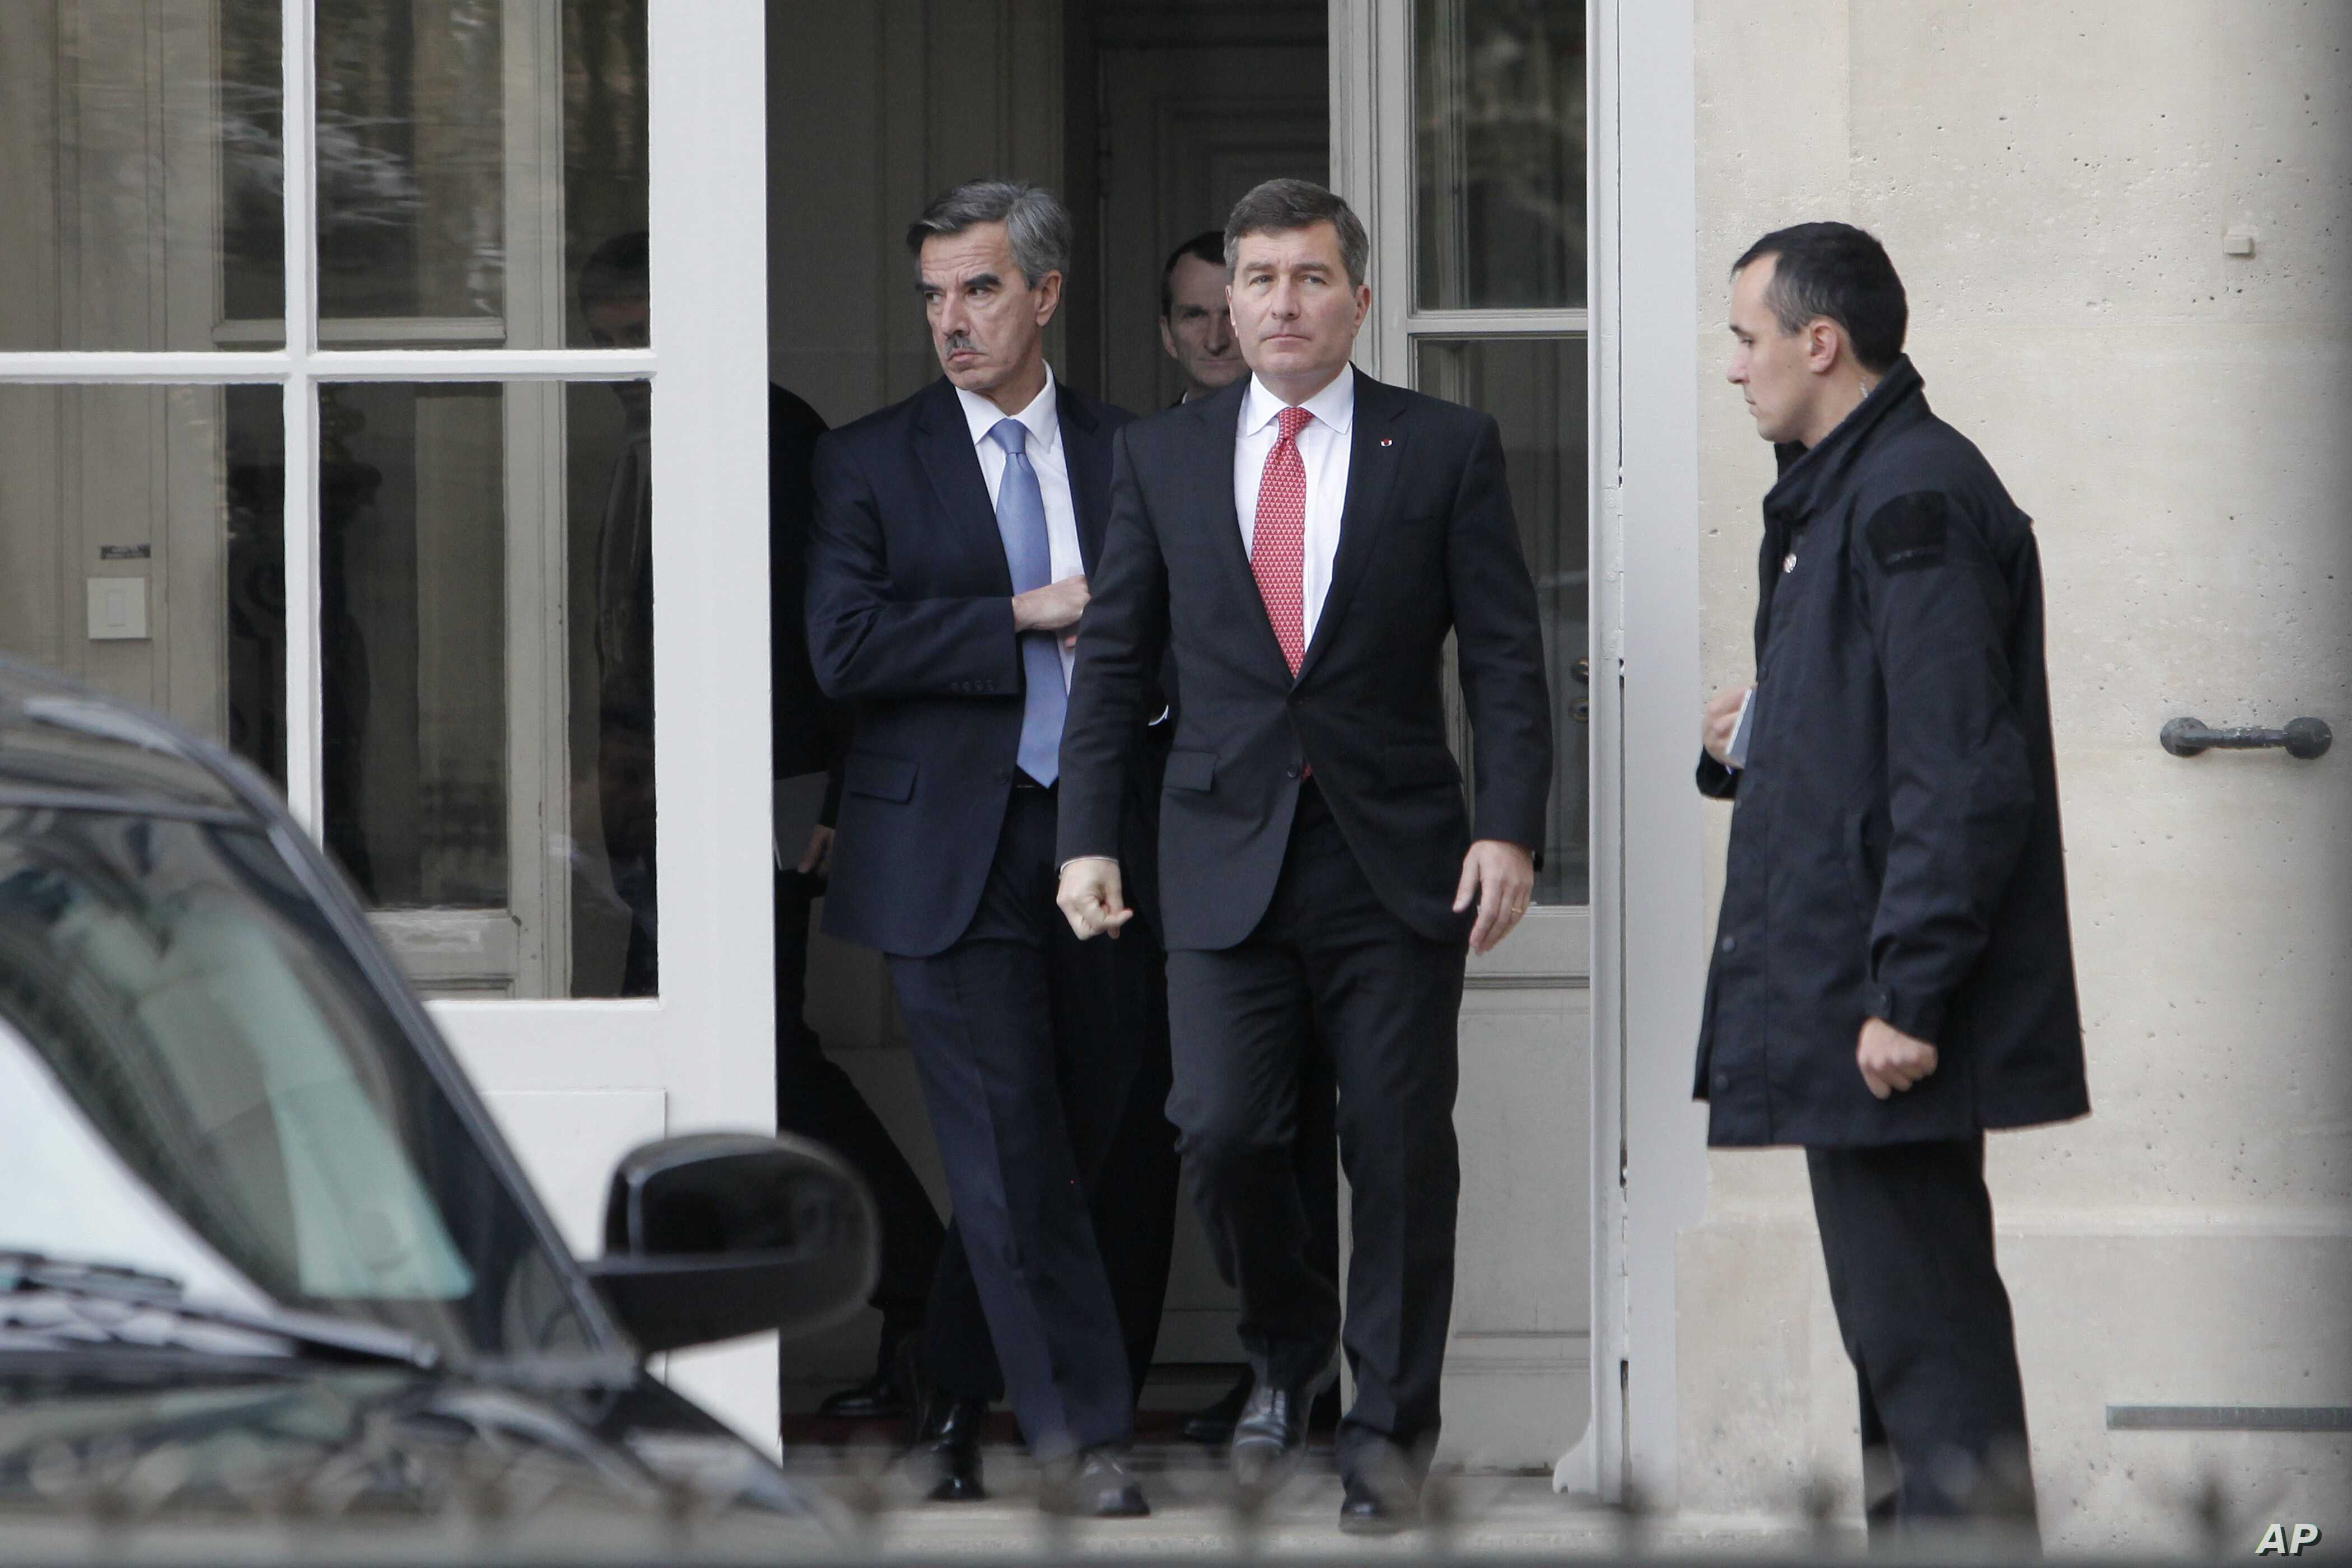 U.S Ambassador to France Charles Rivkin (right) leaves the Foreign Ministry in Paris, after he was summoned, Oct. 21, 2013, to explain why America spied on one of its closest allies.